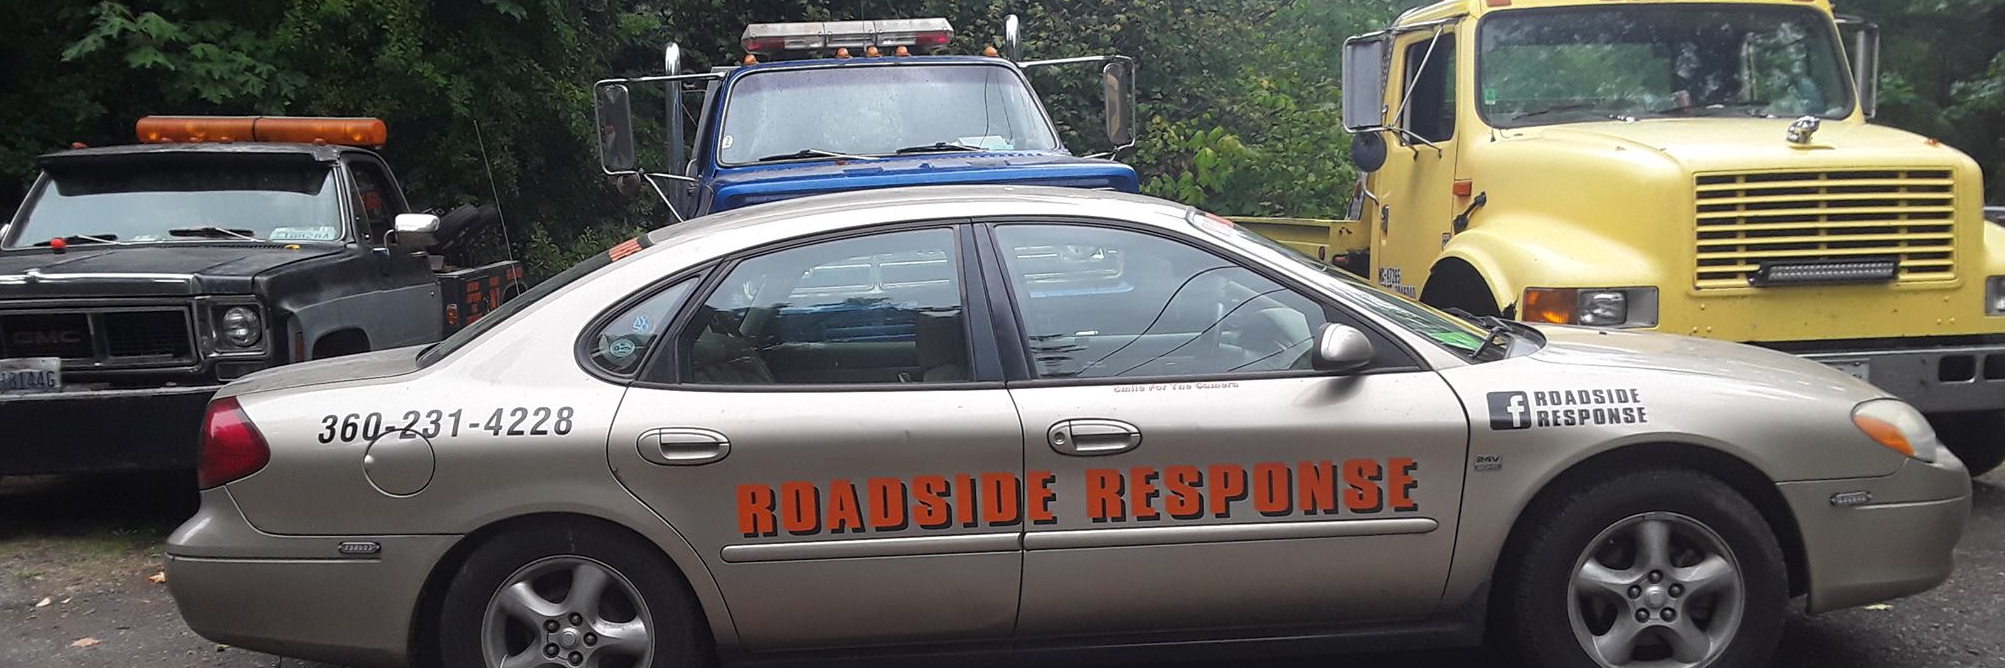 Roadside Response Towing.com Profile Banner